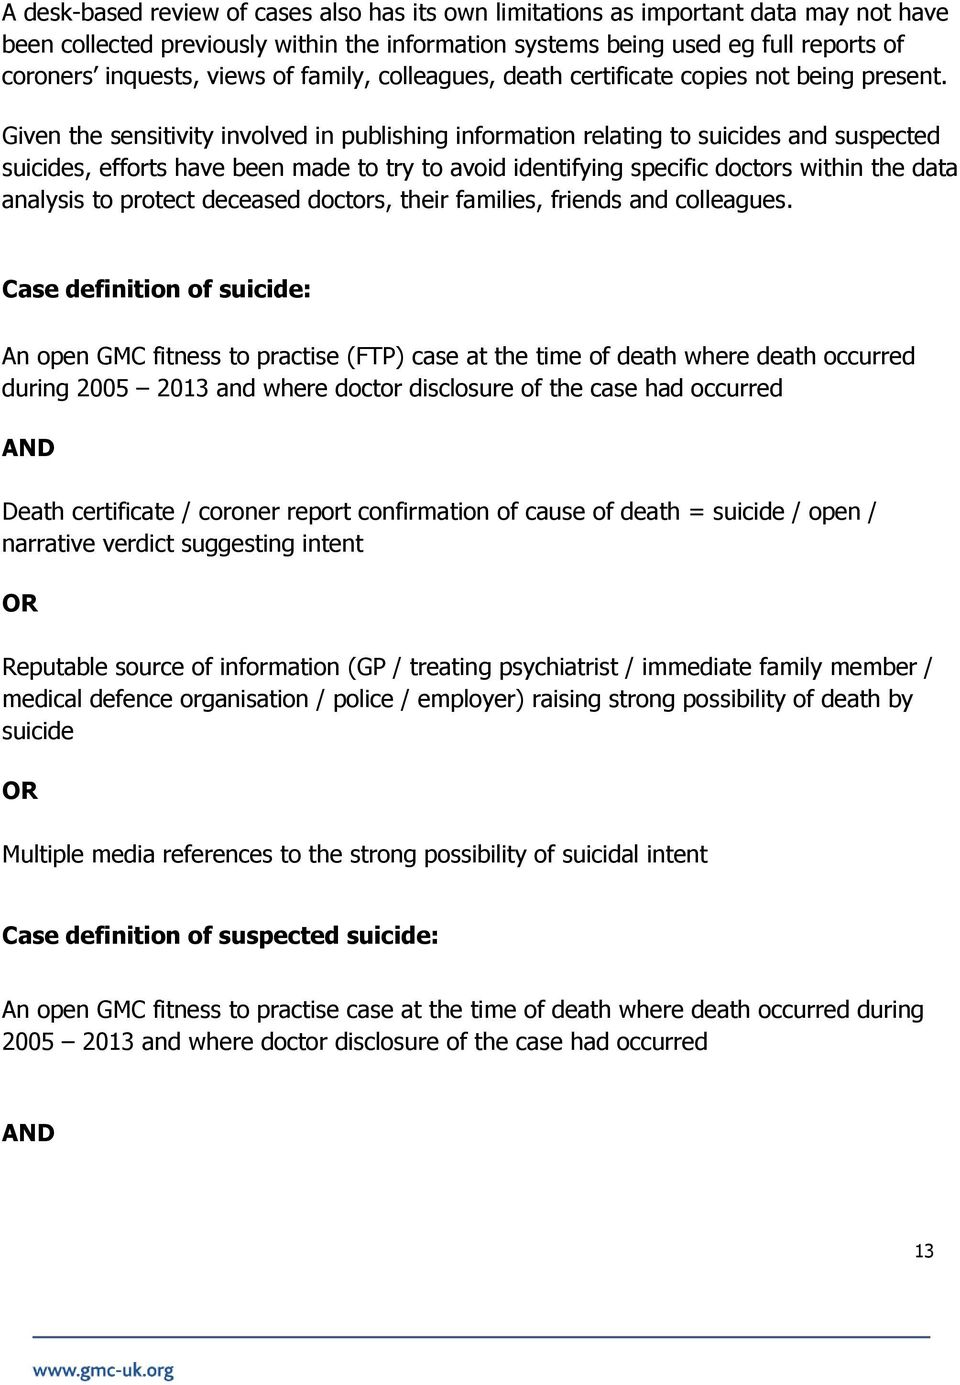 Given the sensitivity involved in publishing information relating to suicides and suspected suicides, efforts have been made to try to avoid identifying specific doctors within the data analysis to